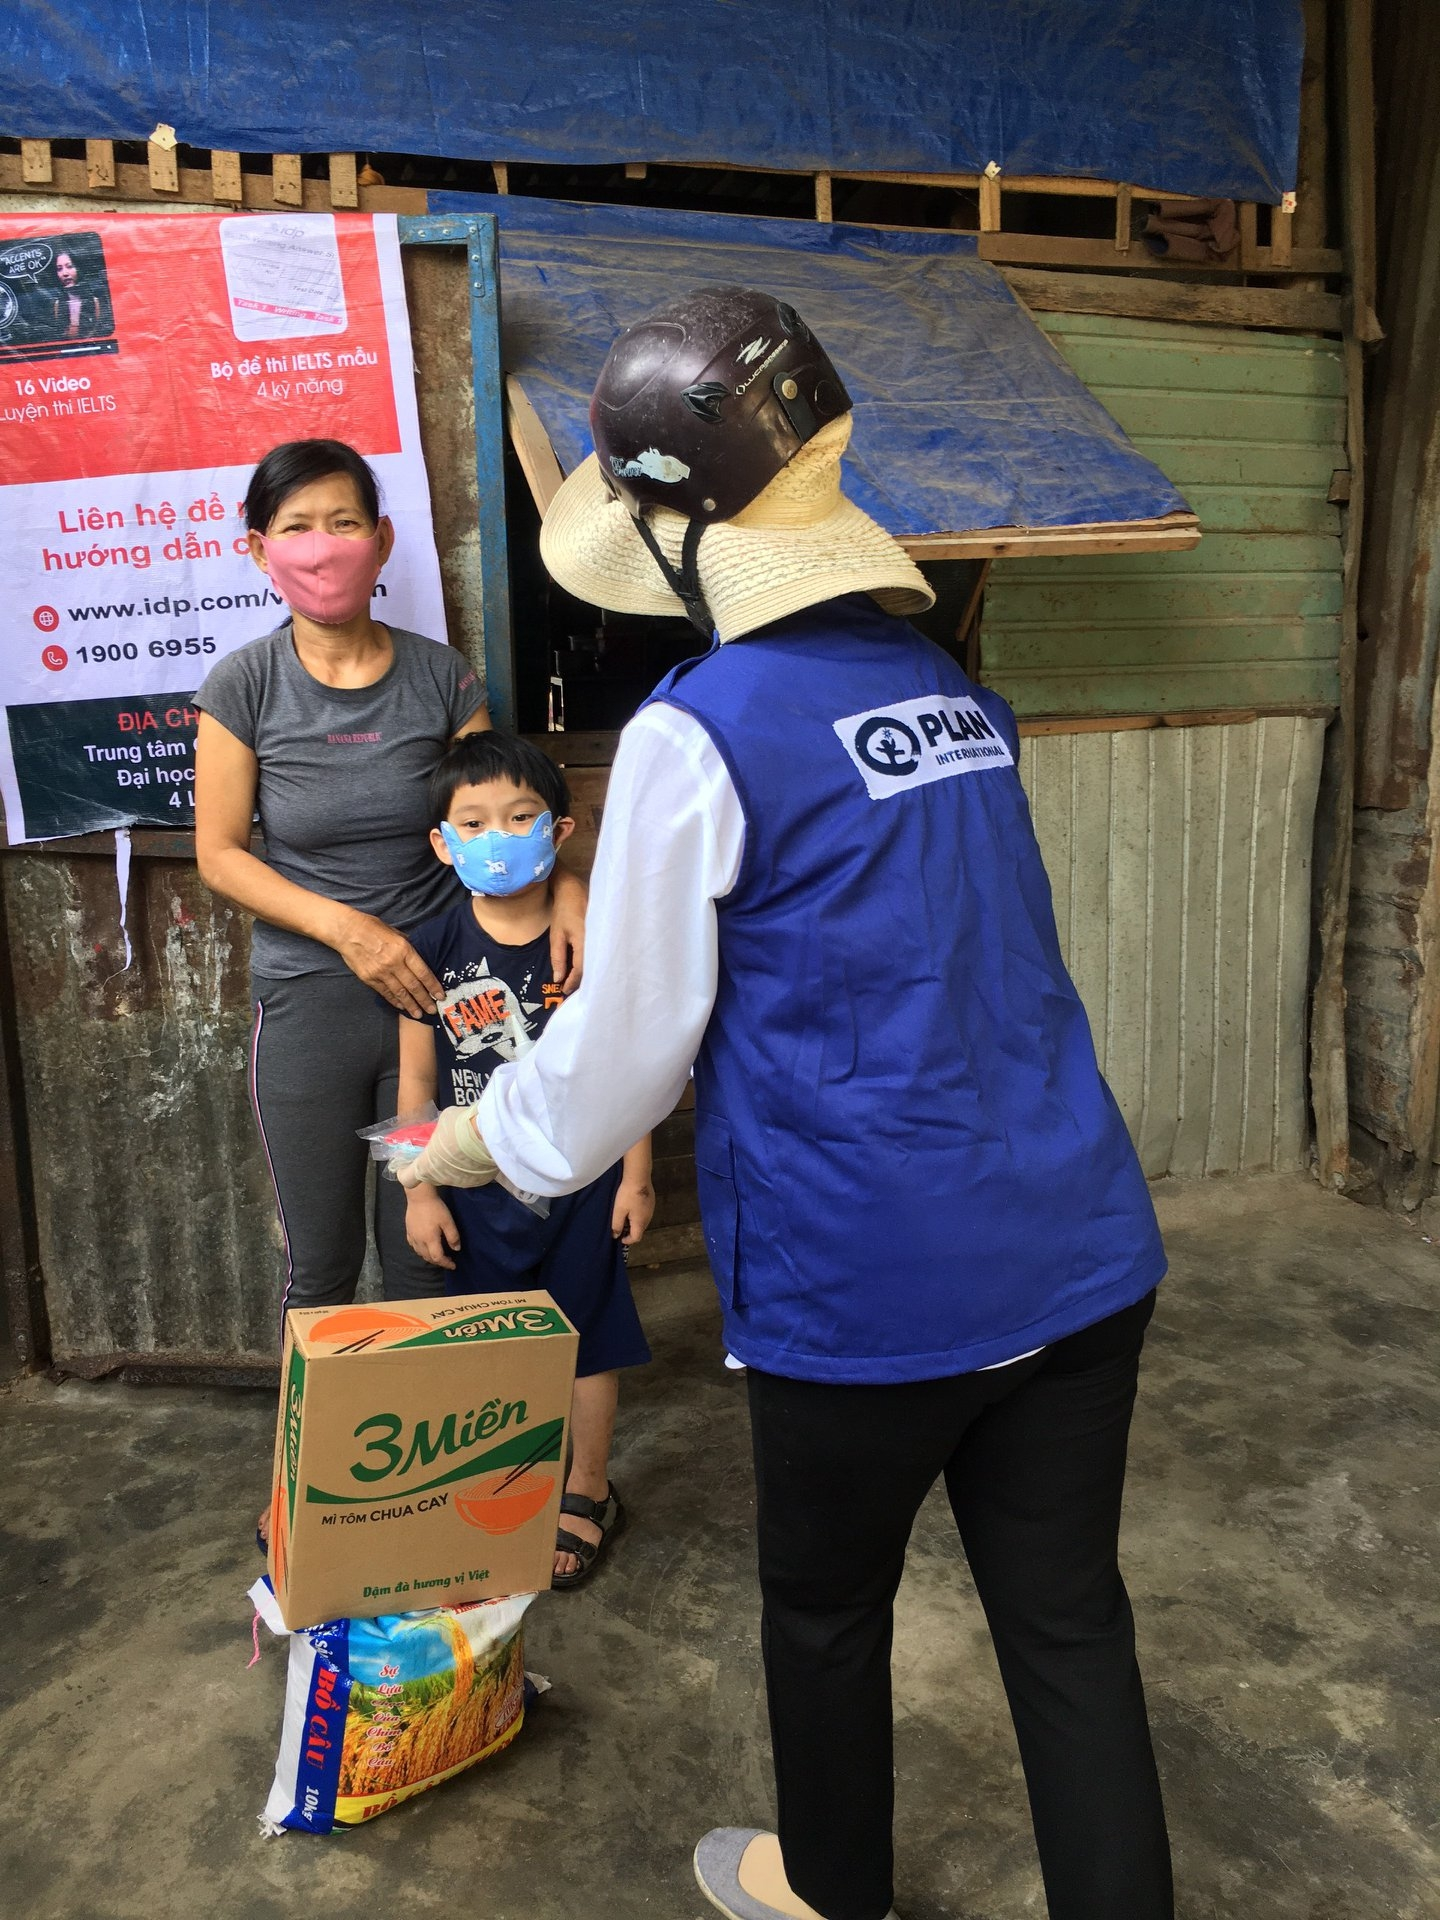 plan international vietnam provides support package for over 400 families in thua thien hue